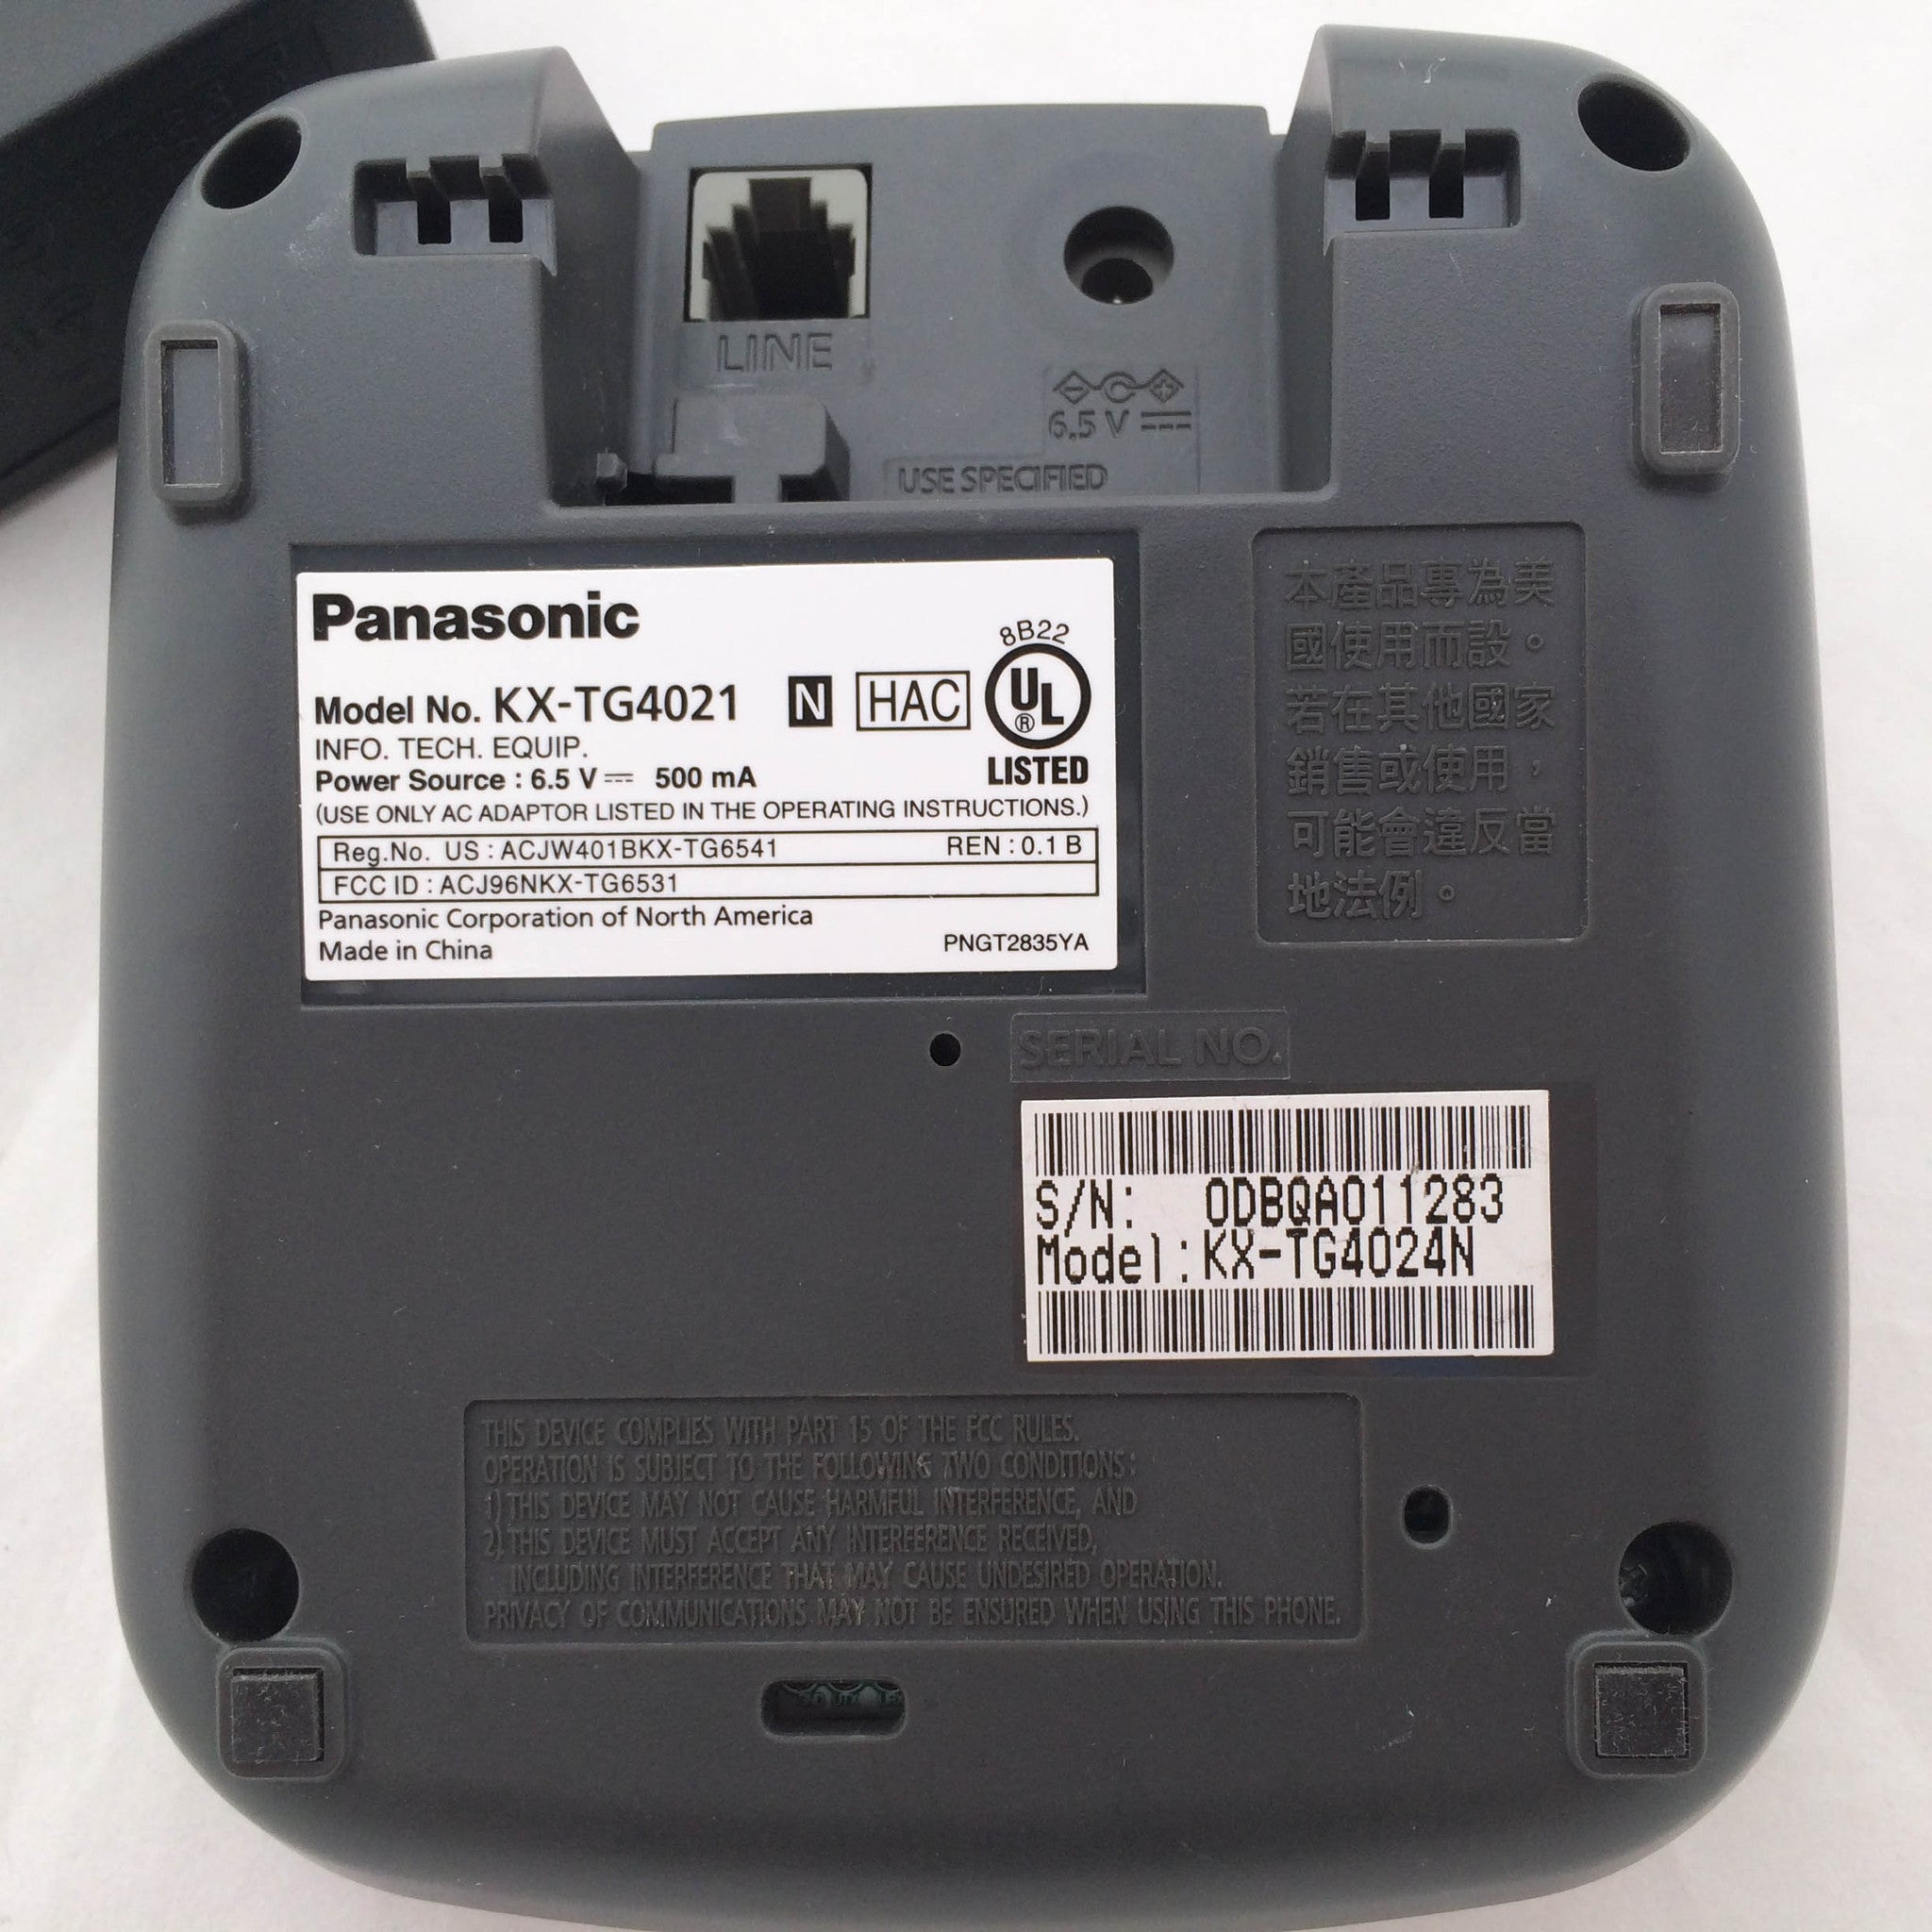 panasonic kx tg4021 cordless phone main base only replacement w rh pluginreplacements com panasonic kx-tg4021 user manual panasonic kx-tg4021 instruction manual